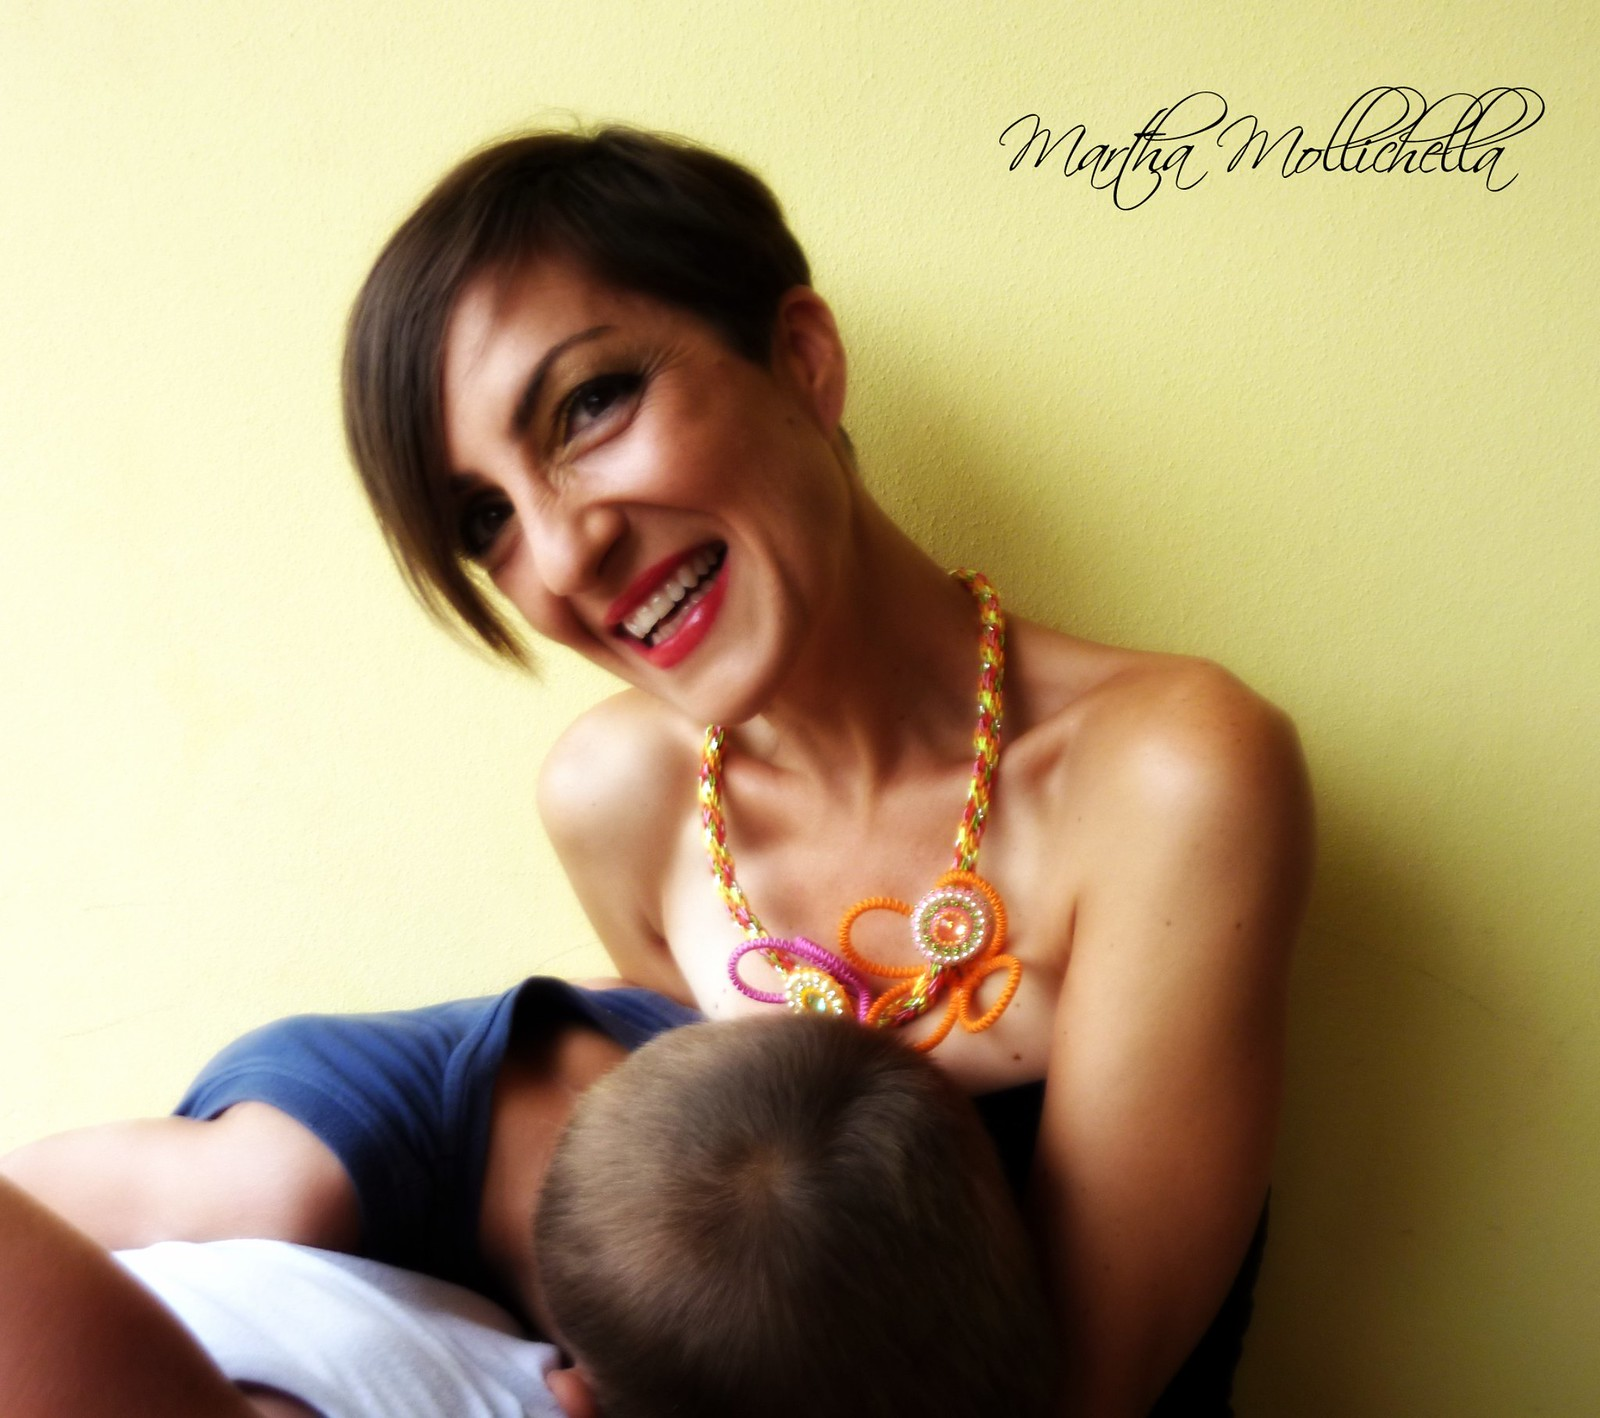 Martha Mollichella Handmade Jewelry family about face to face